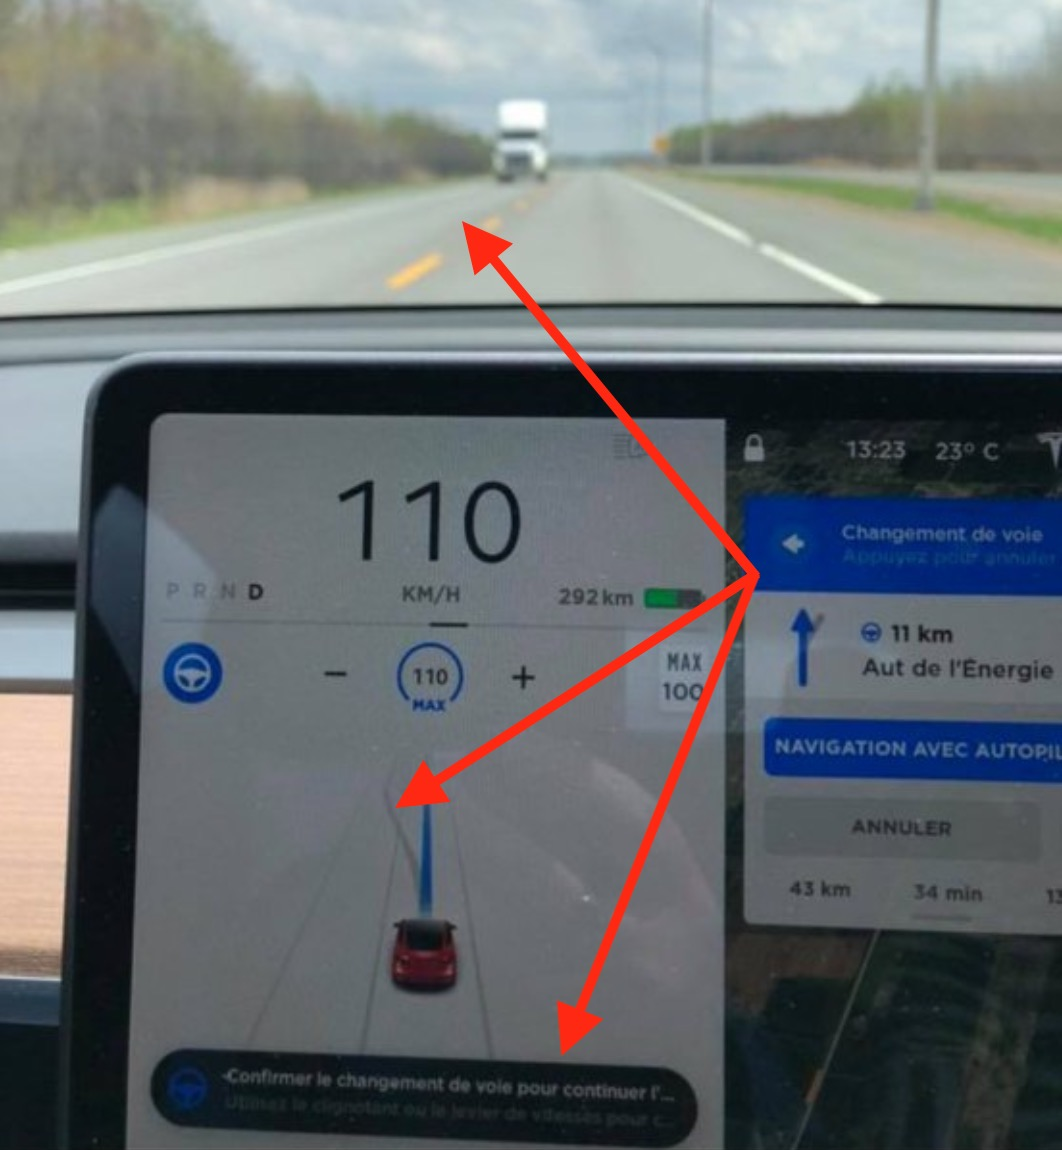 Tesla Autopilot suggests lane change into oncoming traffic